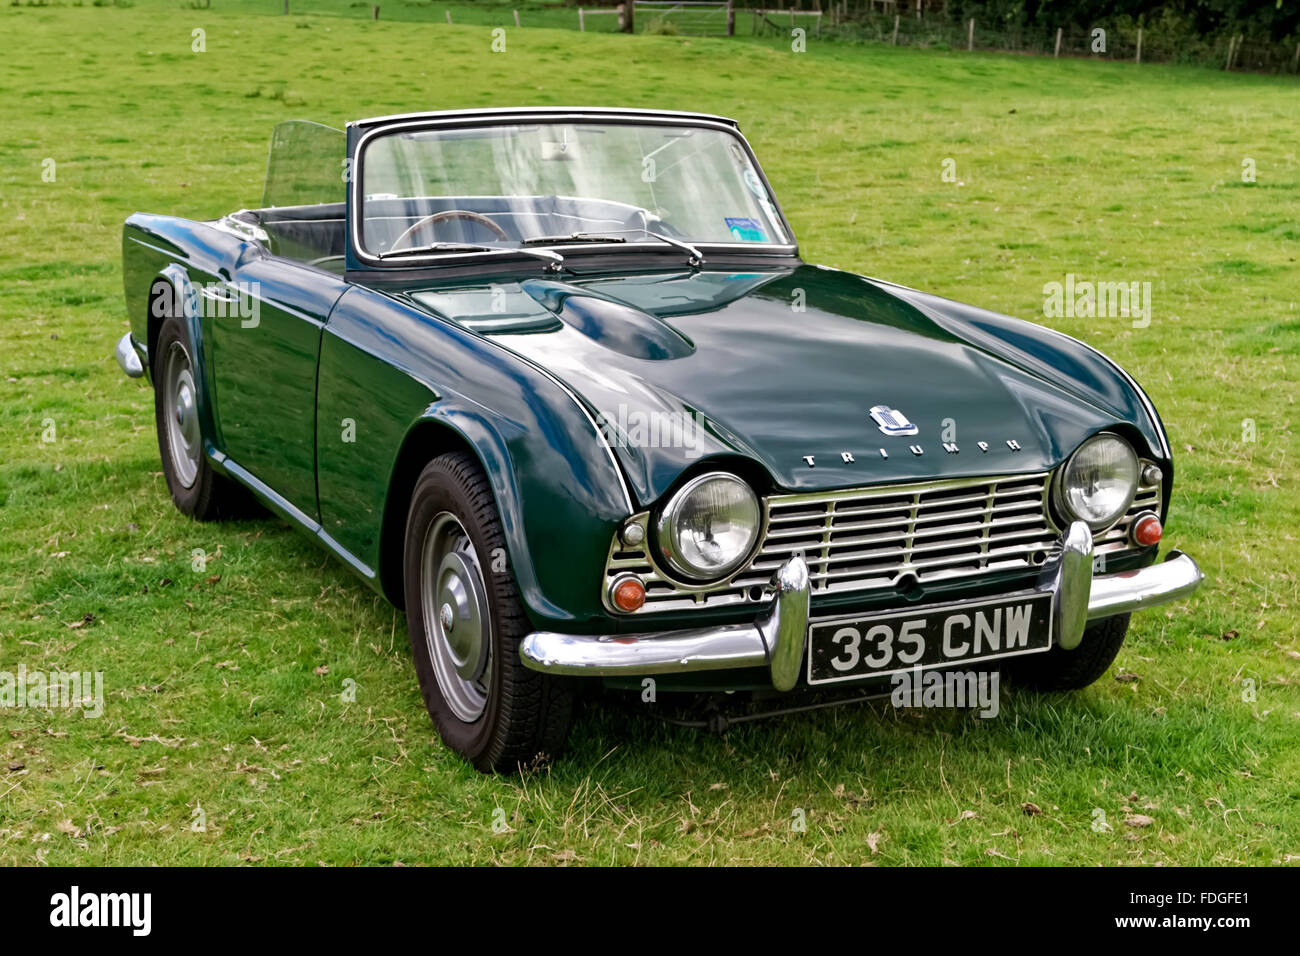 A British Manufactured Triumph Tr4 2 Door Roadster Sports Car At The